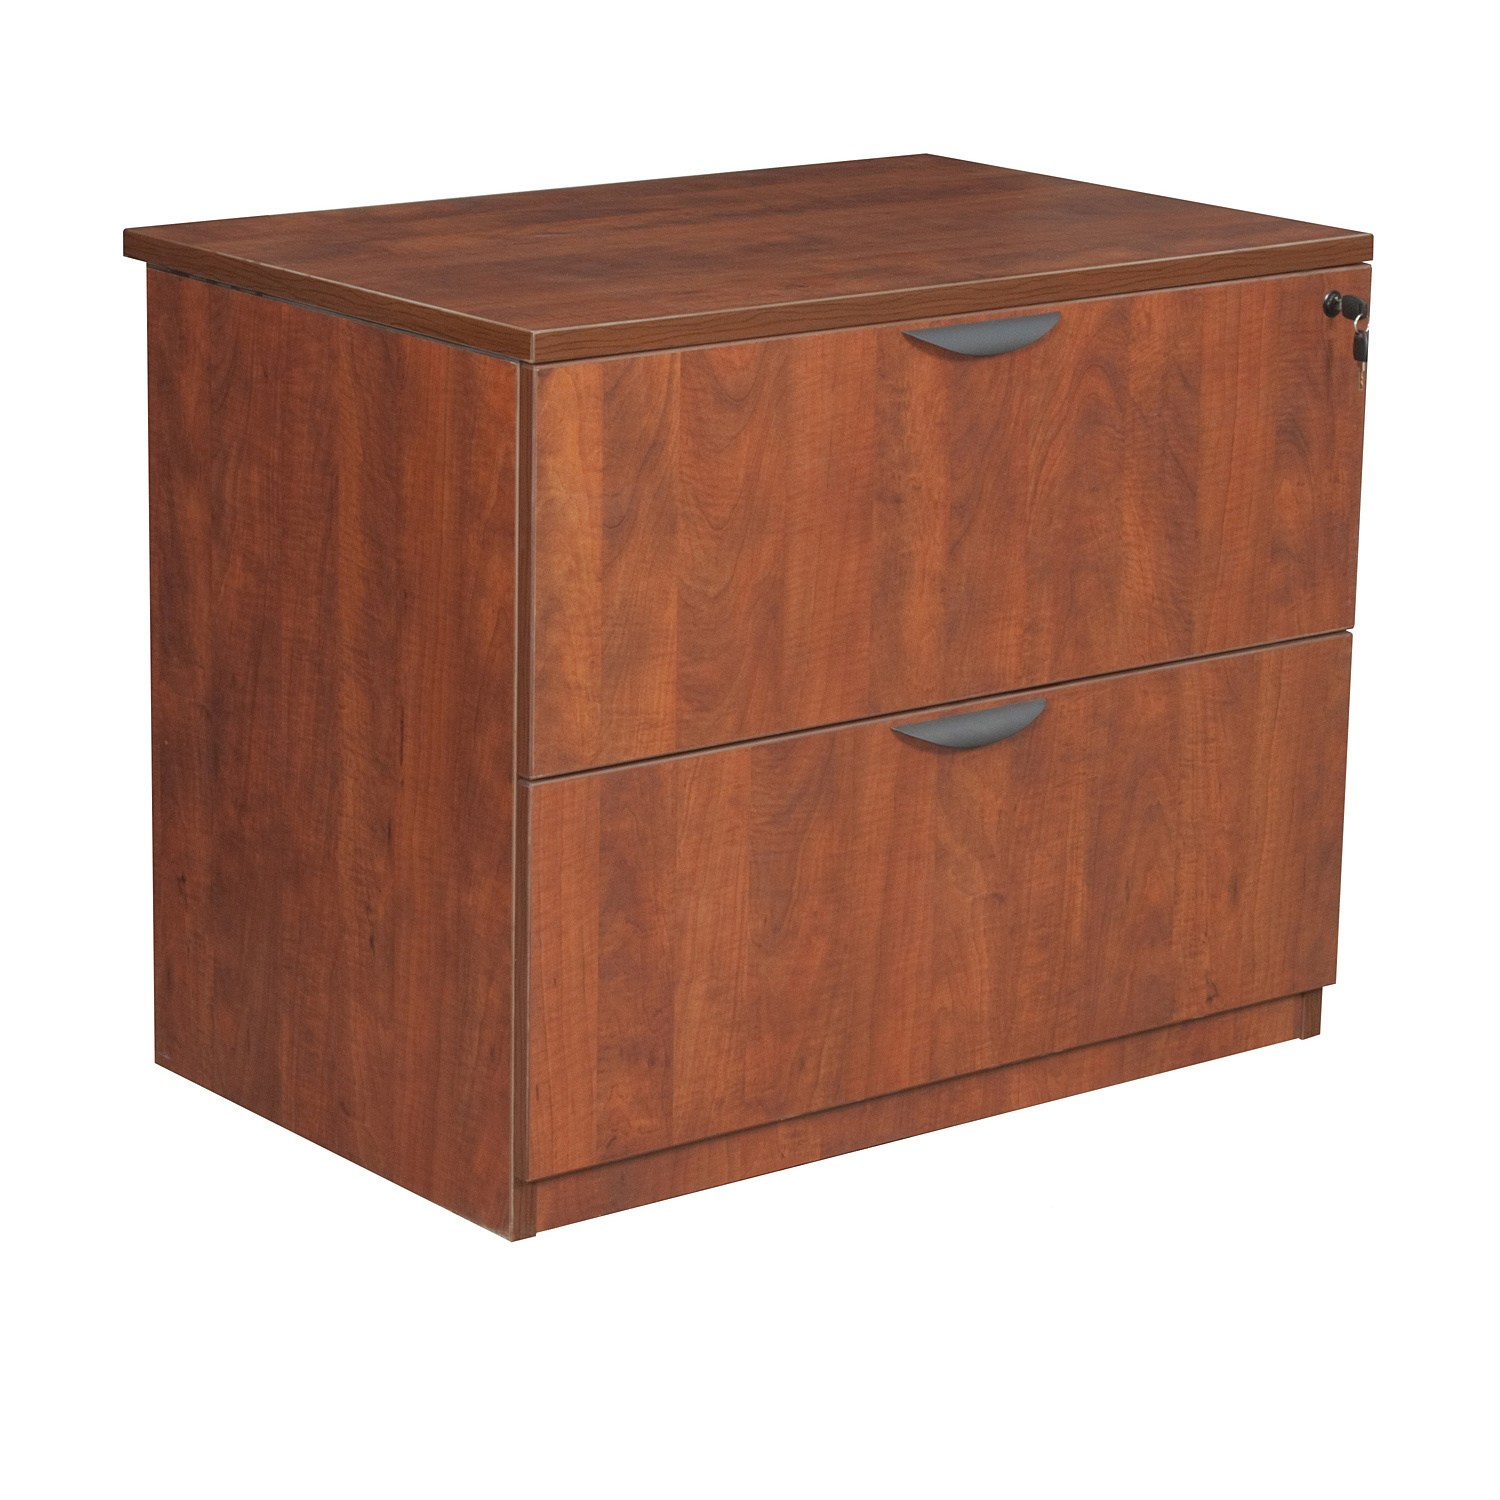 REGENCY Cabinet,36 x 29 x 24 In,Cherry LPLF3624CH